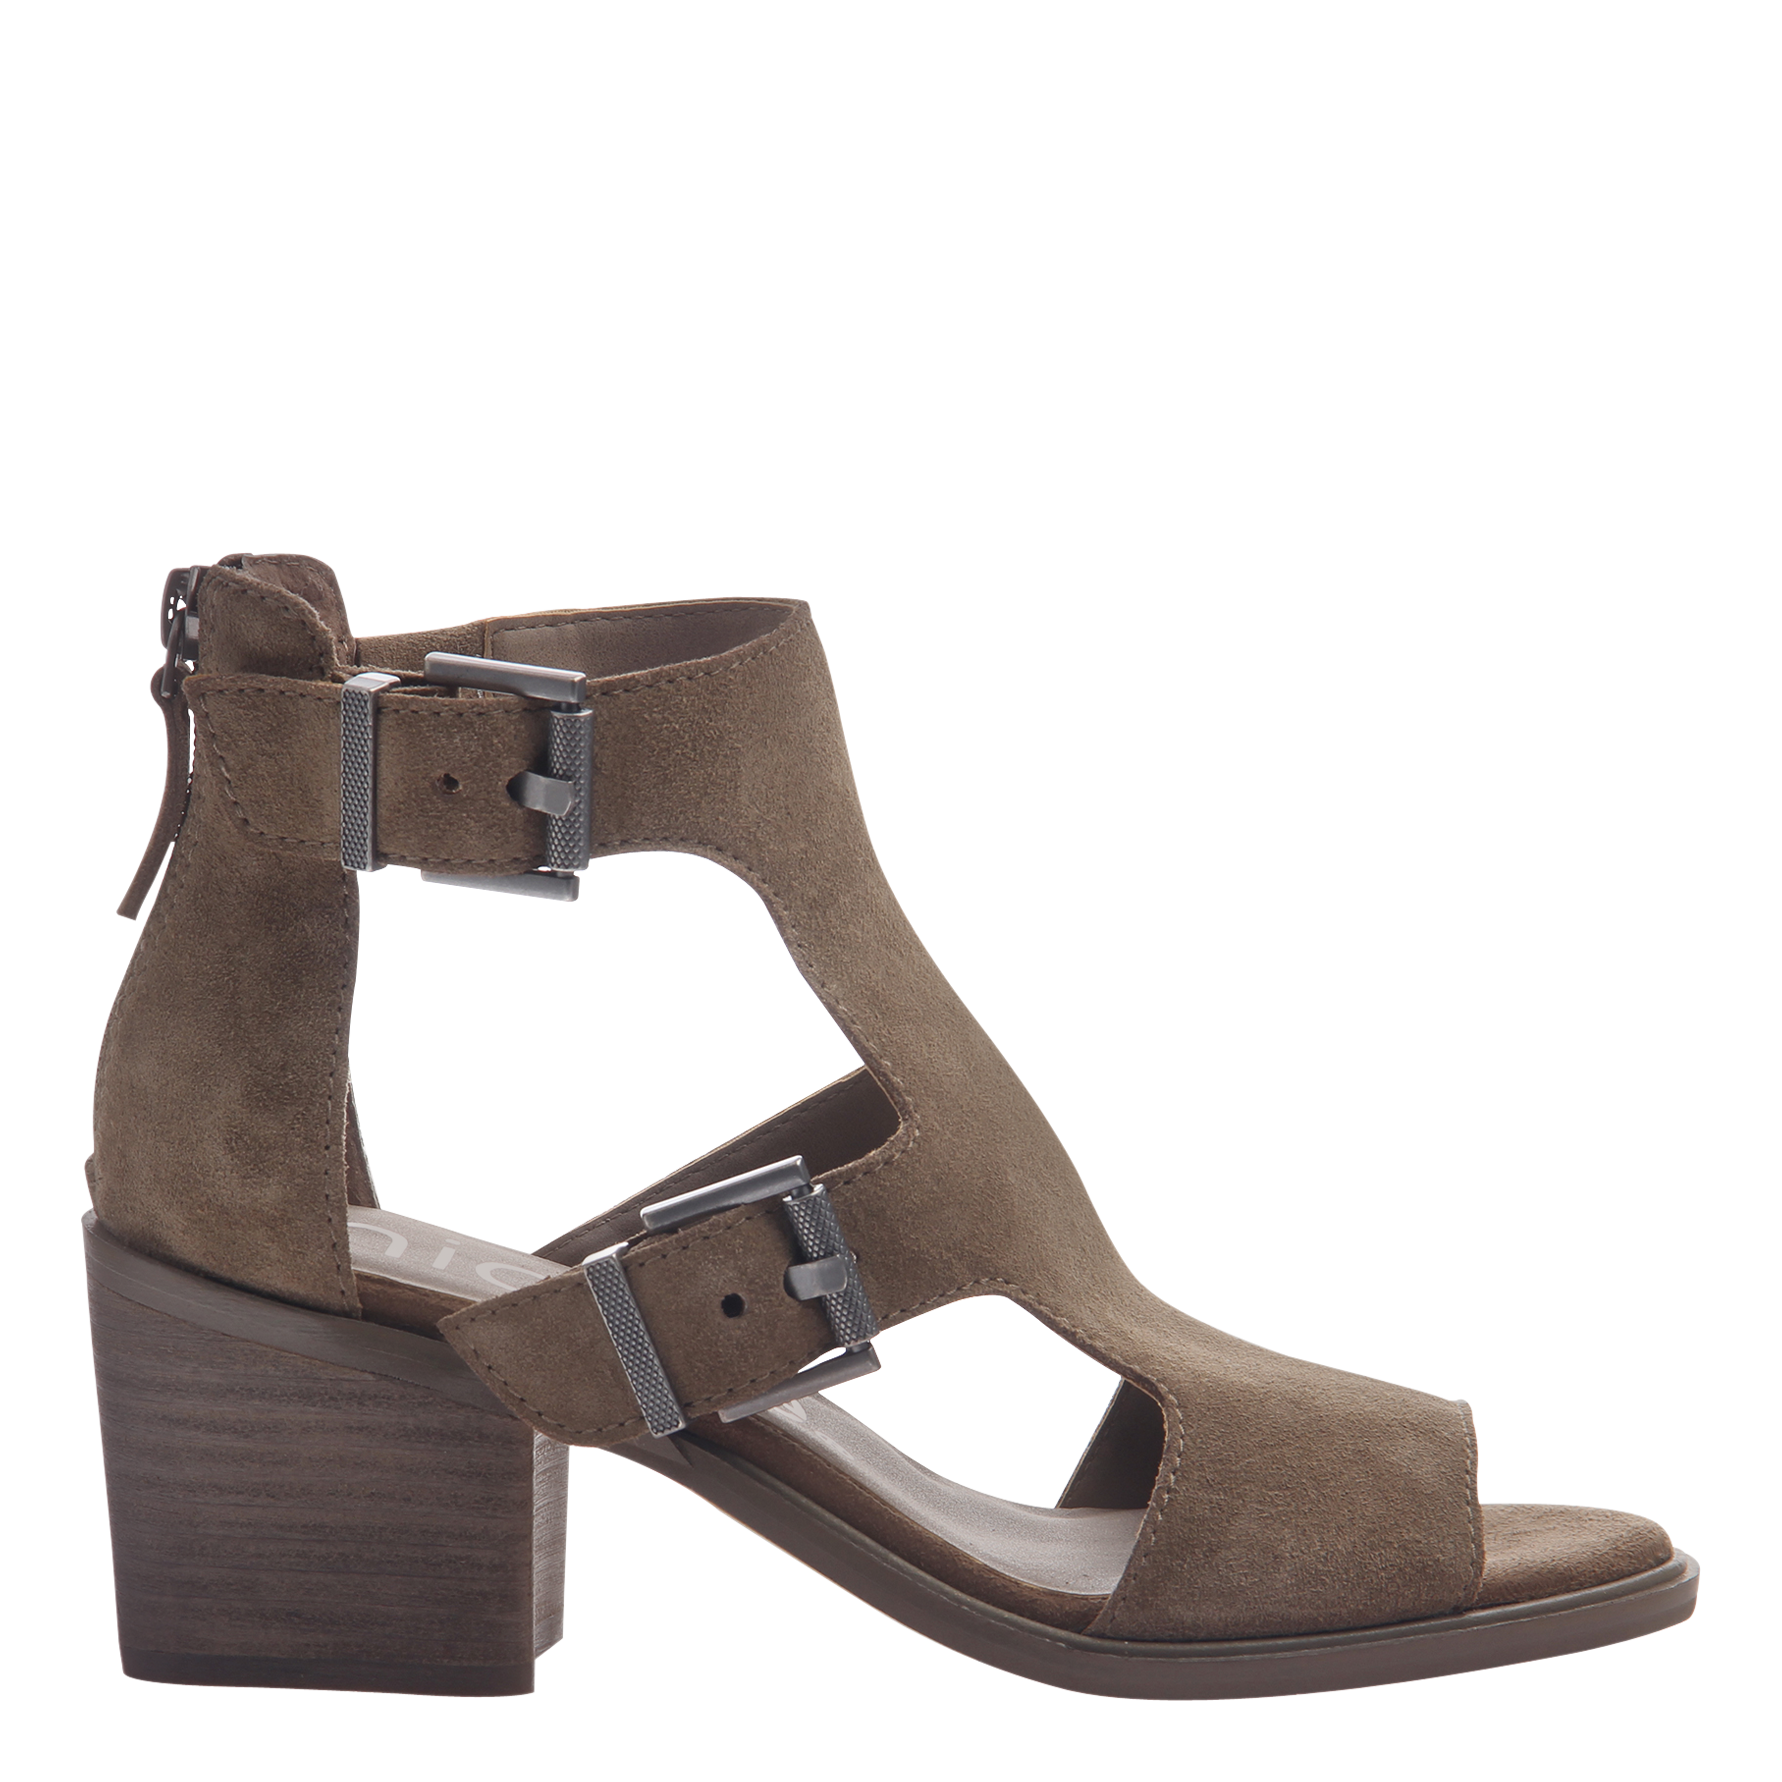 Womens heeled sandals Jahida in otter side view